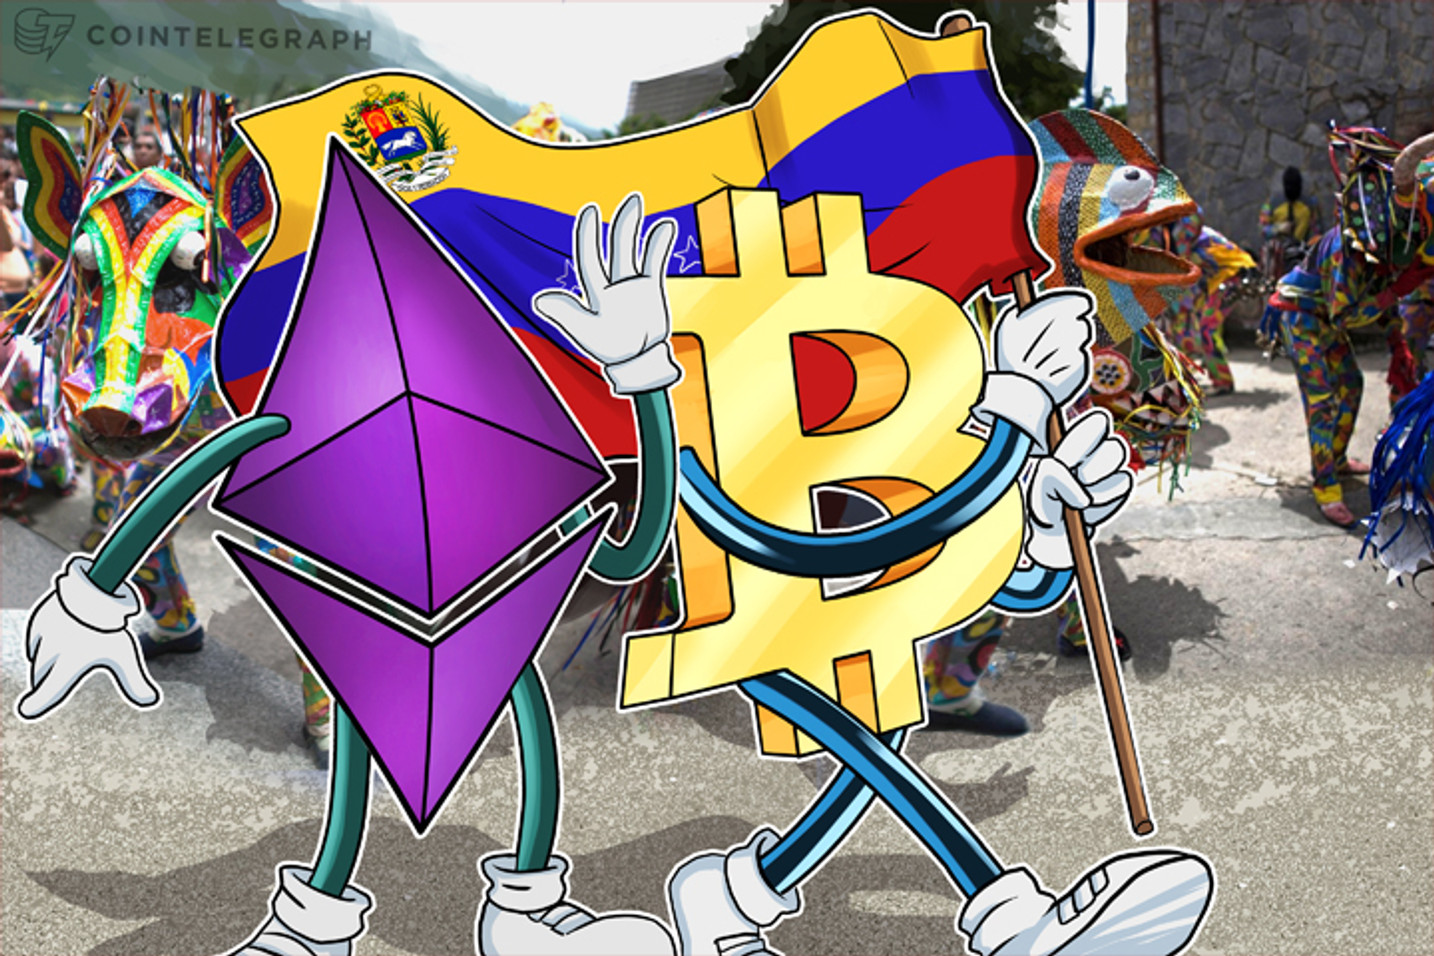 Ethereum is Rising in Popularity in Venezuela Along With Bitcoin